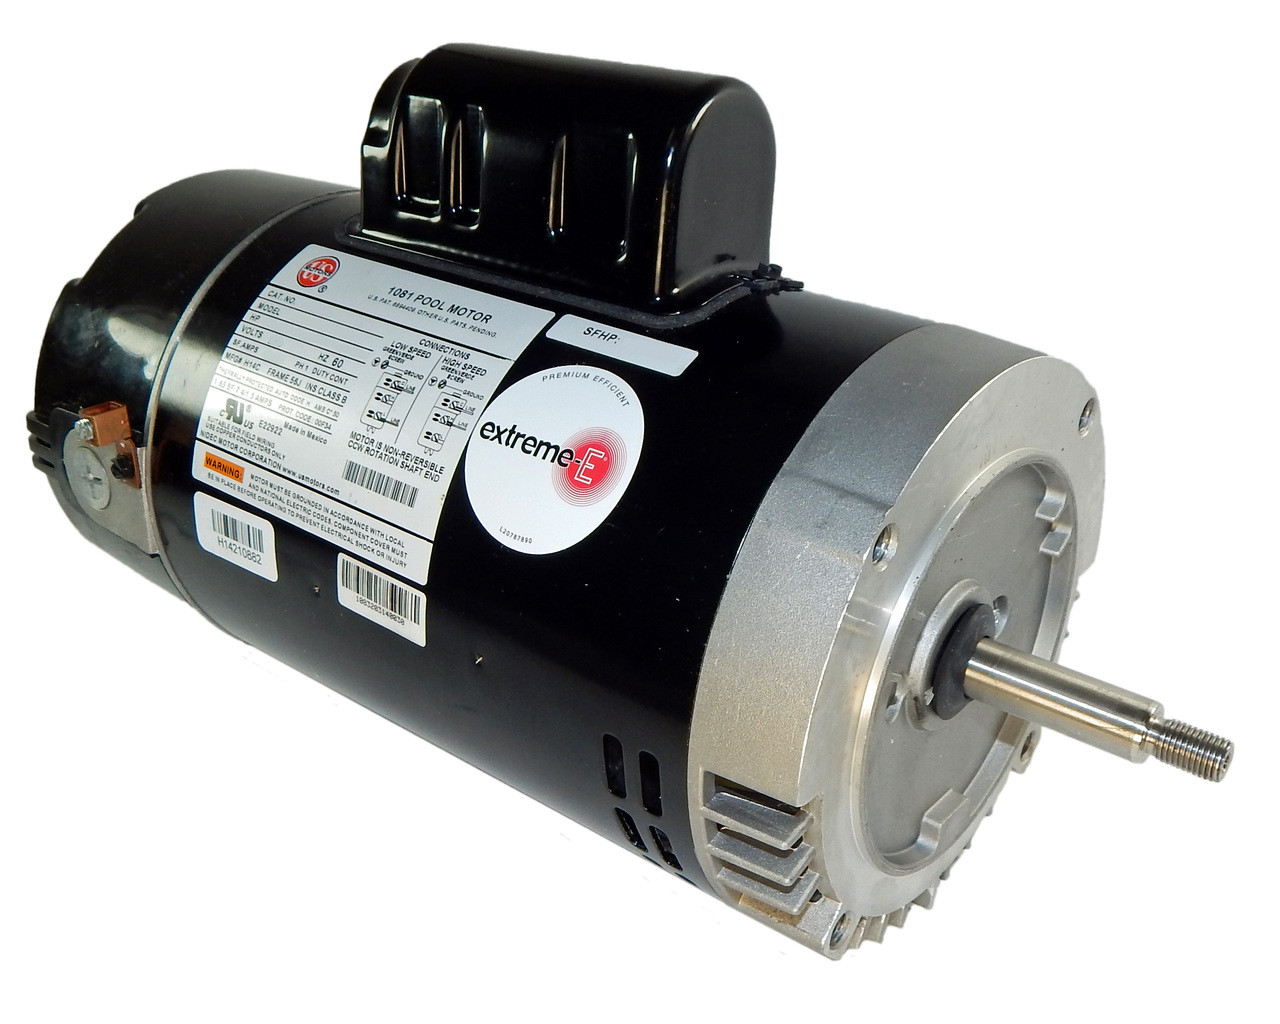 small resolution of 1 5 hp 2 speed 56j frame 230v 2 speed swimming pool motor us electric motor asb2977